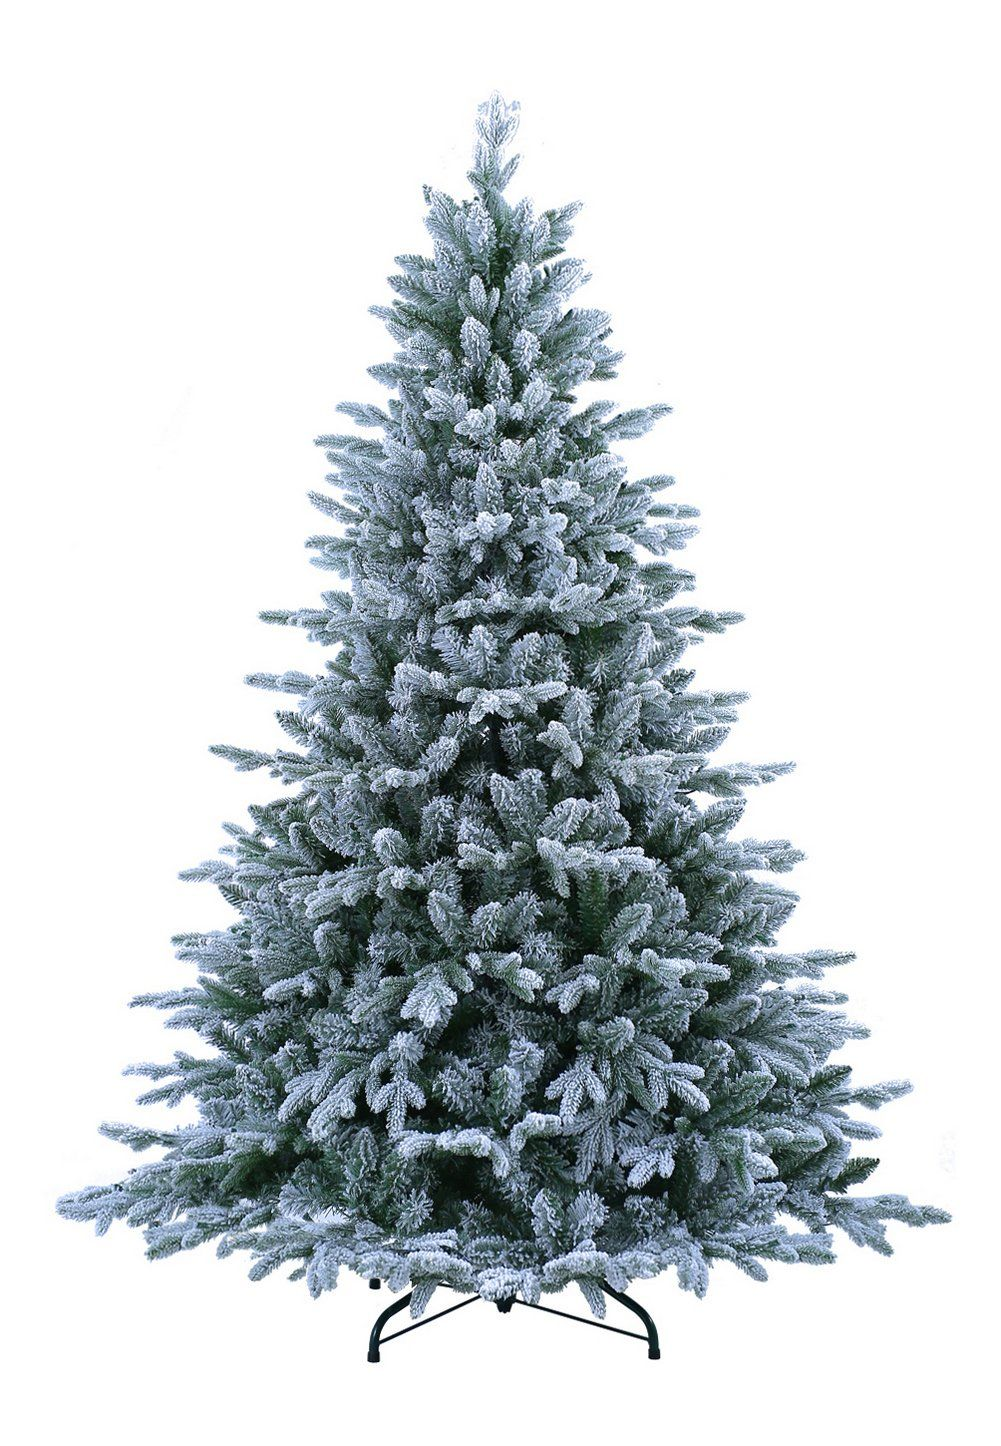 ABUSA Flocked Christmas Tree 9 ft Prelit Clearance with 900 LED ...